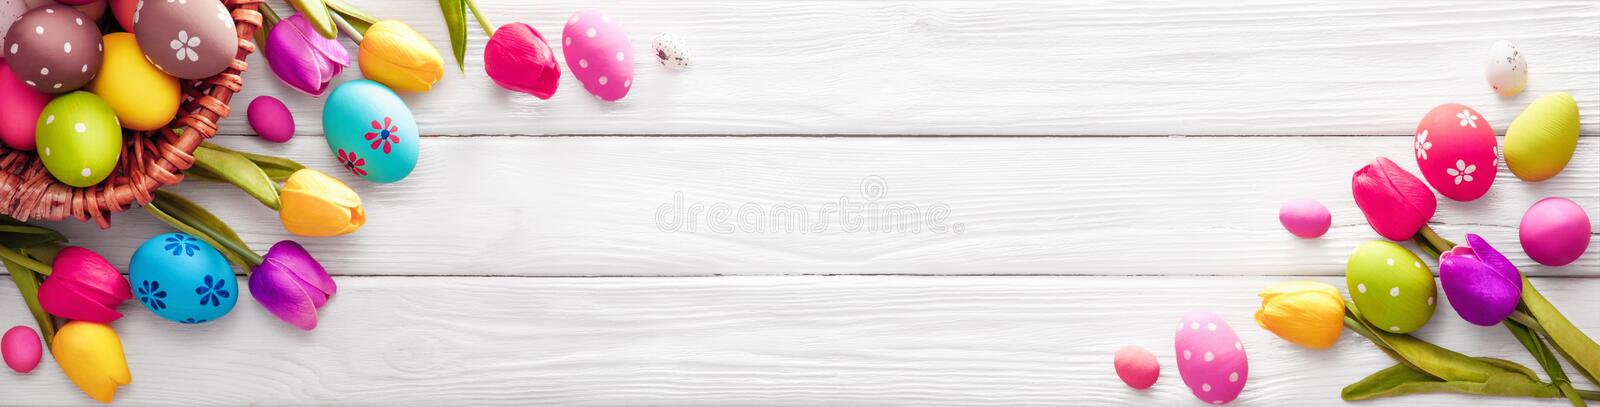 Easter Eggs with Flowers royalty free stock photo